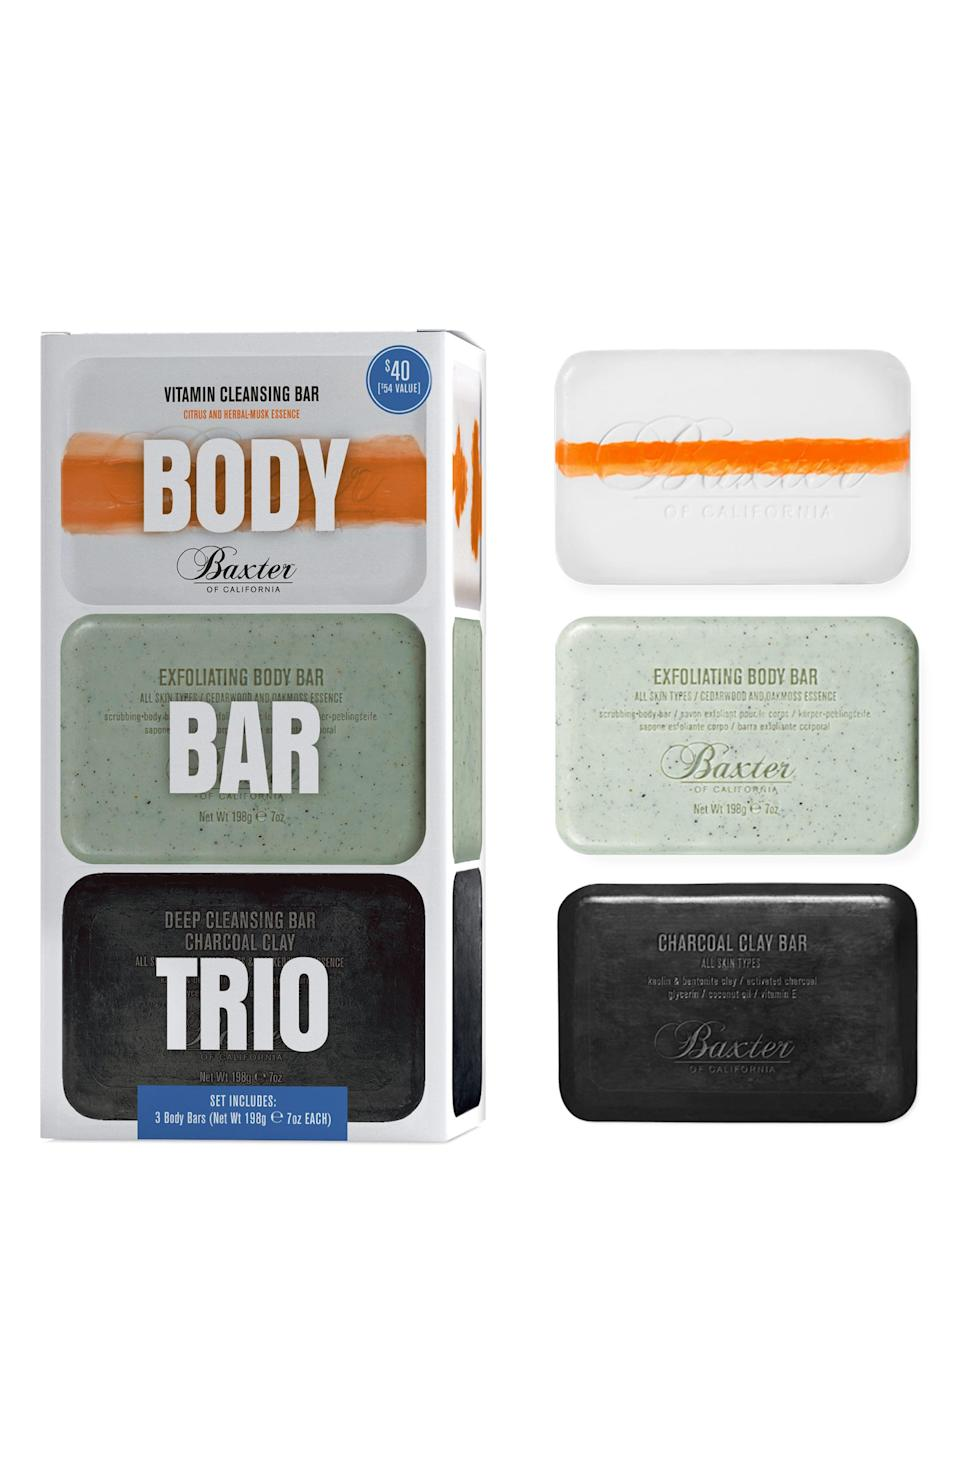 """<h3><strong>Baxter Of California</strong> Body Bar Trio</h3><br><br>If he doesn't care about how he washes his face, combs his hair, or trims his beard, then there's always chic bar soap, which fits right into his comfort level.<br><br><strong>Baxter of California</strong> Body Bar Trio, $, available at <a href=""""https://go.skimresources.com/?id=30283X879131&url=https%3A%2F%2Fshop.nordstrom.com%2Fs%2Fbaxter-of-california-body-bar-trio-54-value%2F4982985%3Forigin%3Dcategory-personalizedsort%26breadcrumb%3DHome%252FMen%252FGrooming%2520%2526%2520Cologne%252FGifts%2520%2526%2520Sets%26color%3Dnone"""" rel=""""nofollow noopener"""" target=""""_blank"""" data-ylk=""""slk:Nordstrom"""" class=""""link rapid-noclick-resp"""">Nordstrom</a>"""